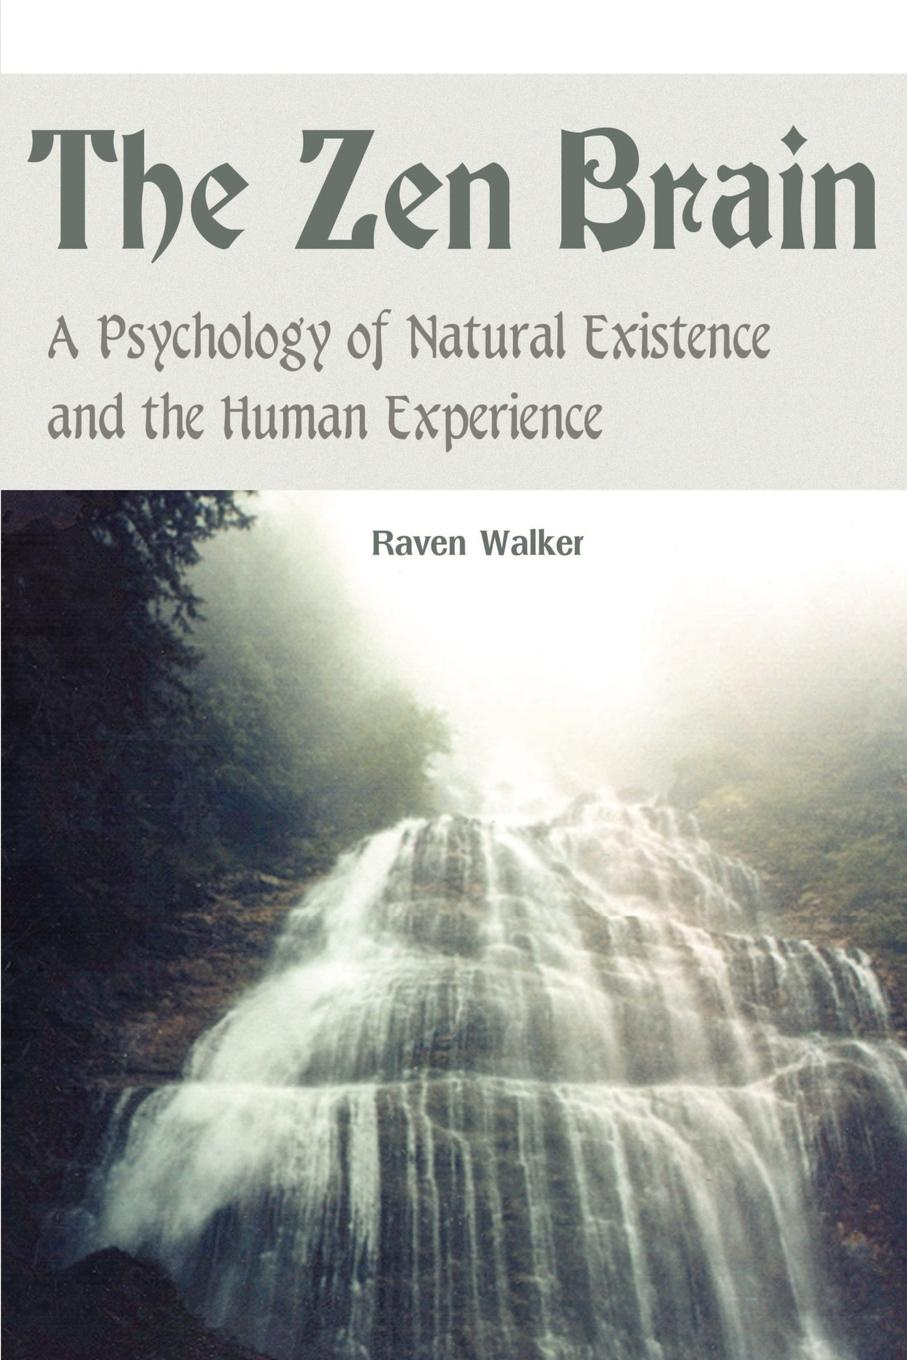 Raven Walker The Zen Brain. A Psychology of Natural Existence and the Human Experience